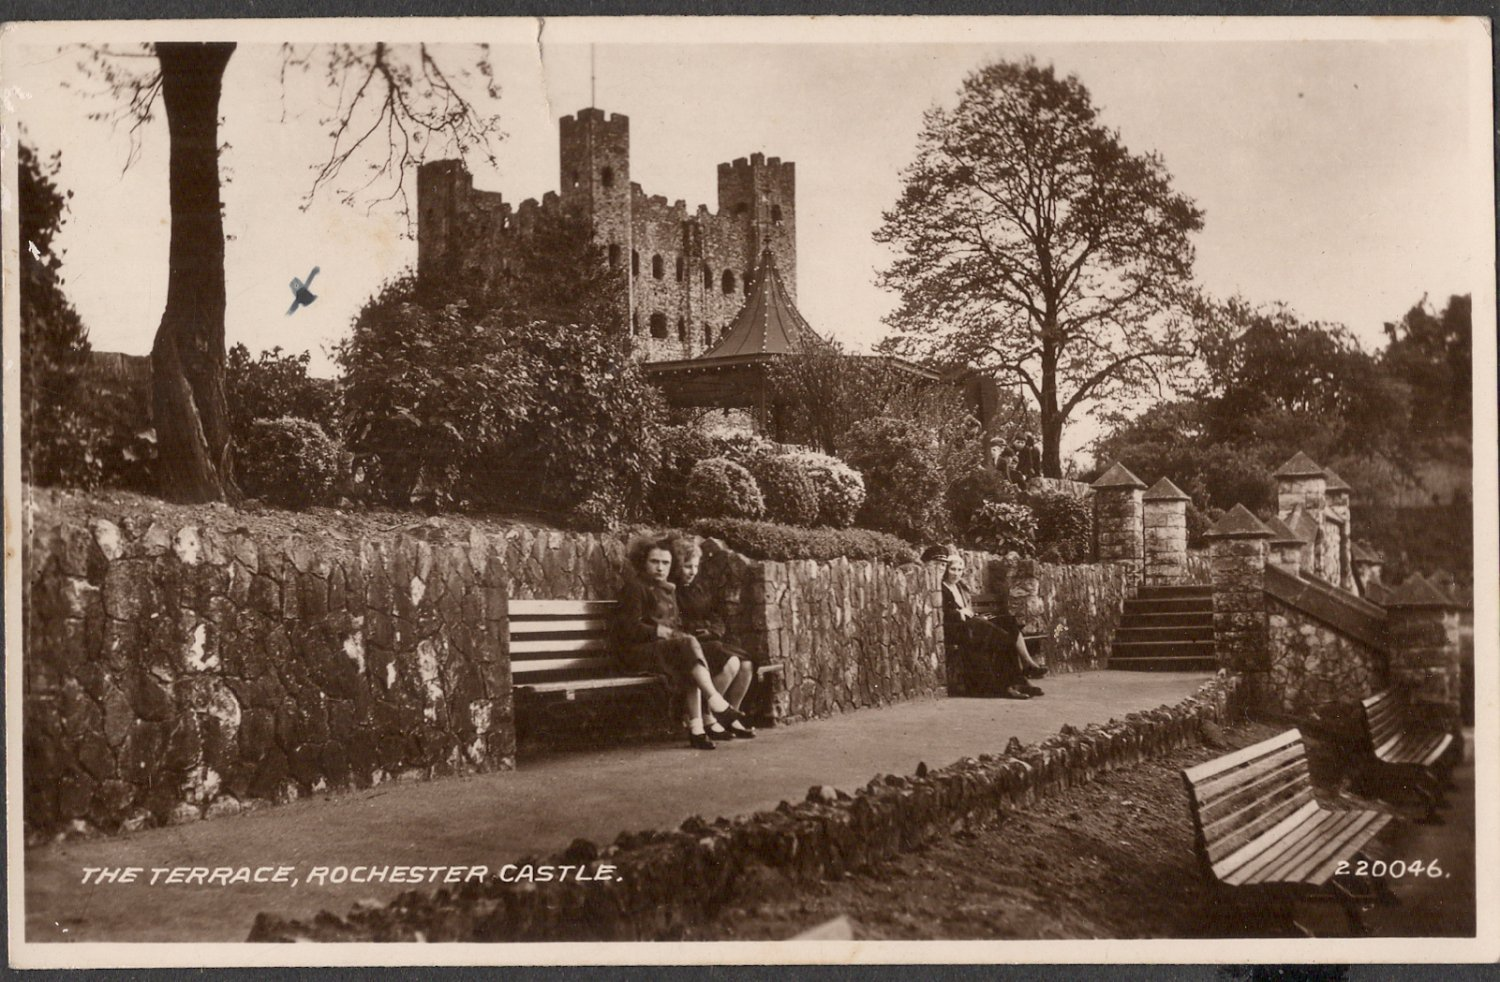 ROCHESTER CASTLE 1949 PICTURE POSTCARD REAL PHOTOGRAPH